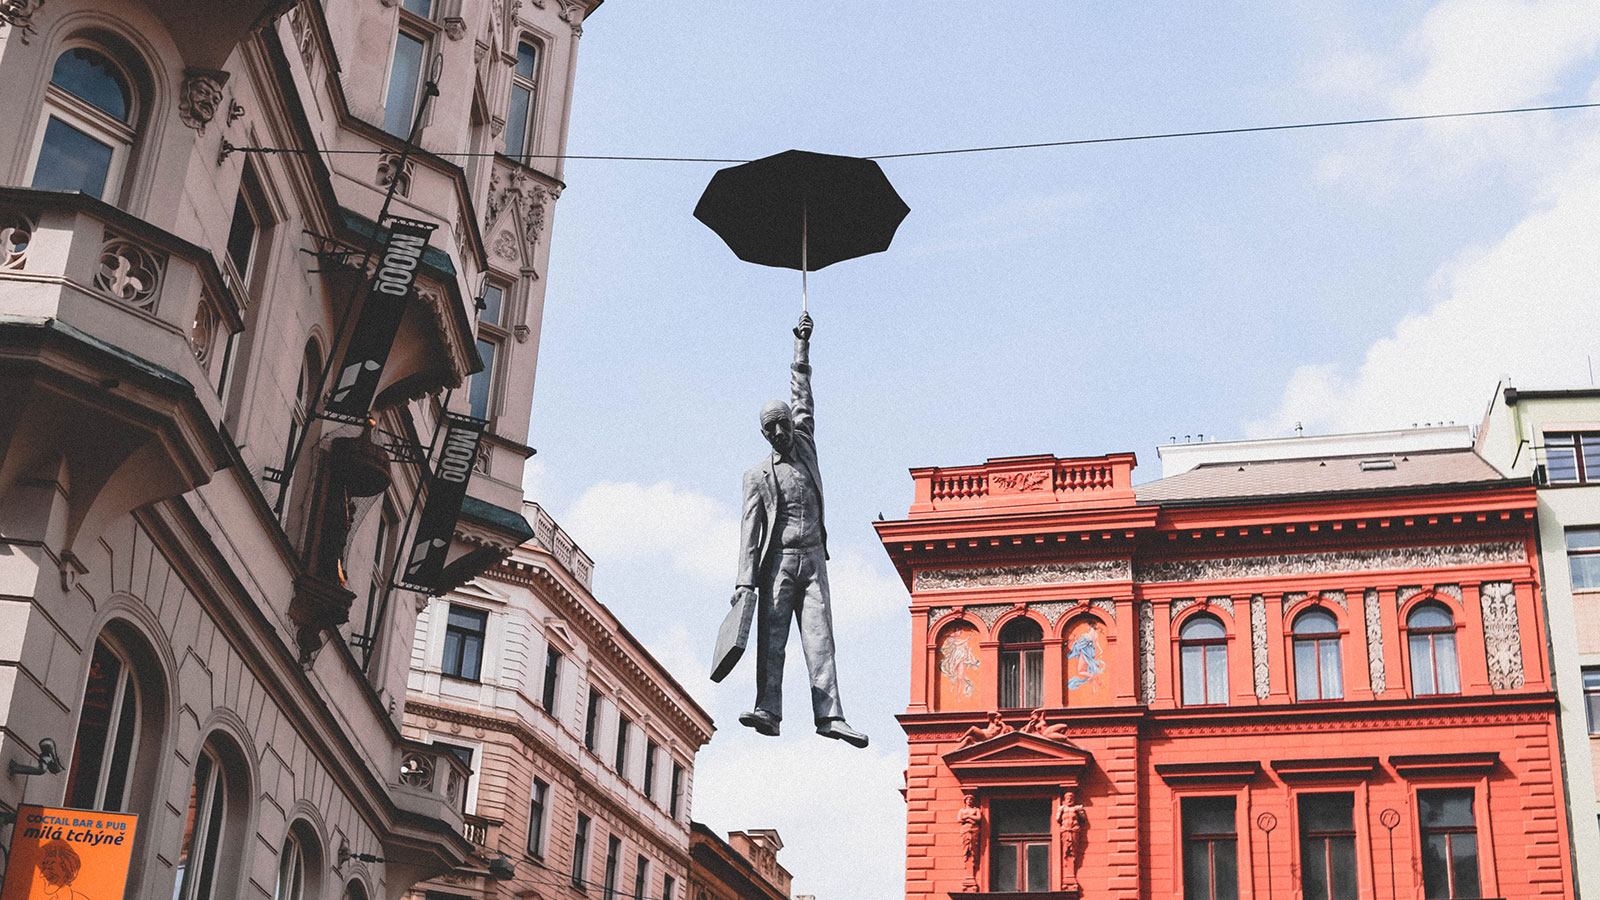 Statue of a man with an umbrella in Prague, Photo by Anastasia Dulgier on Unsplash